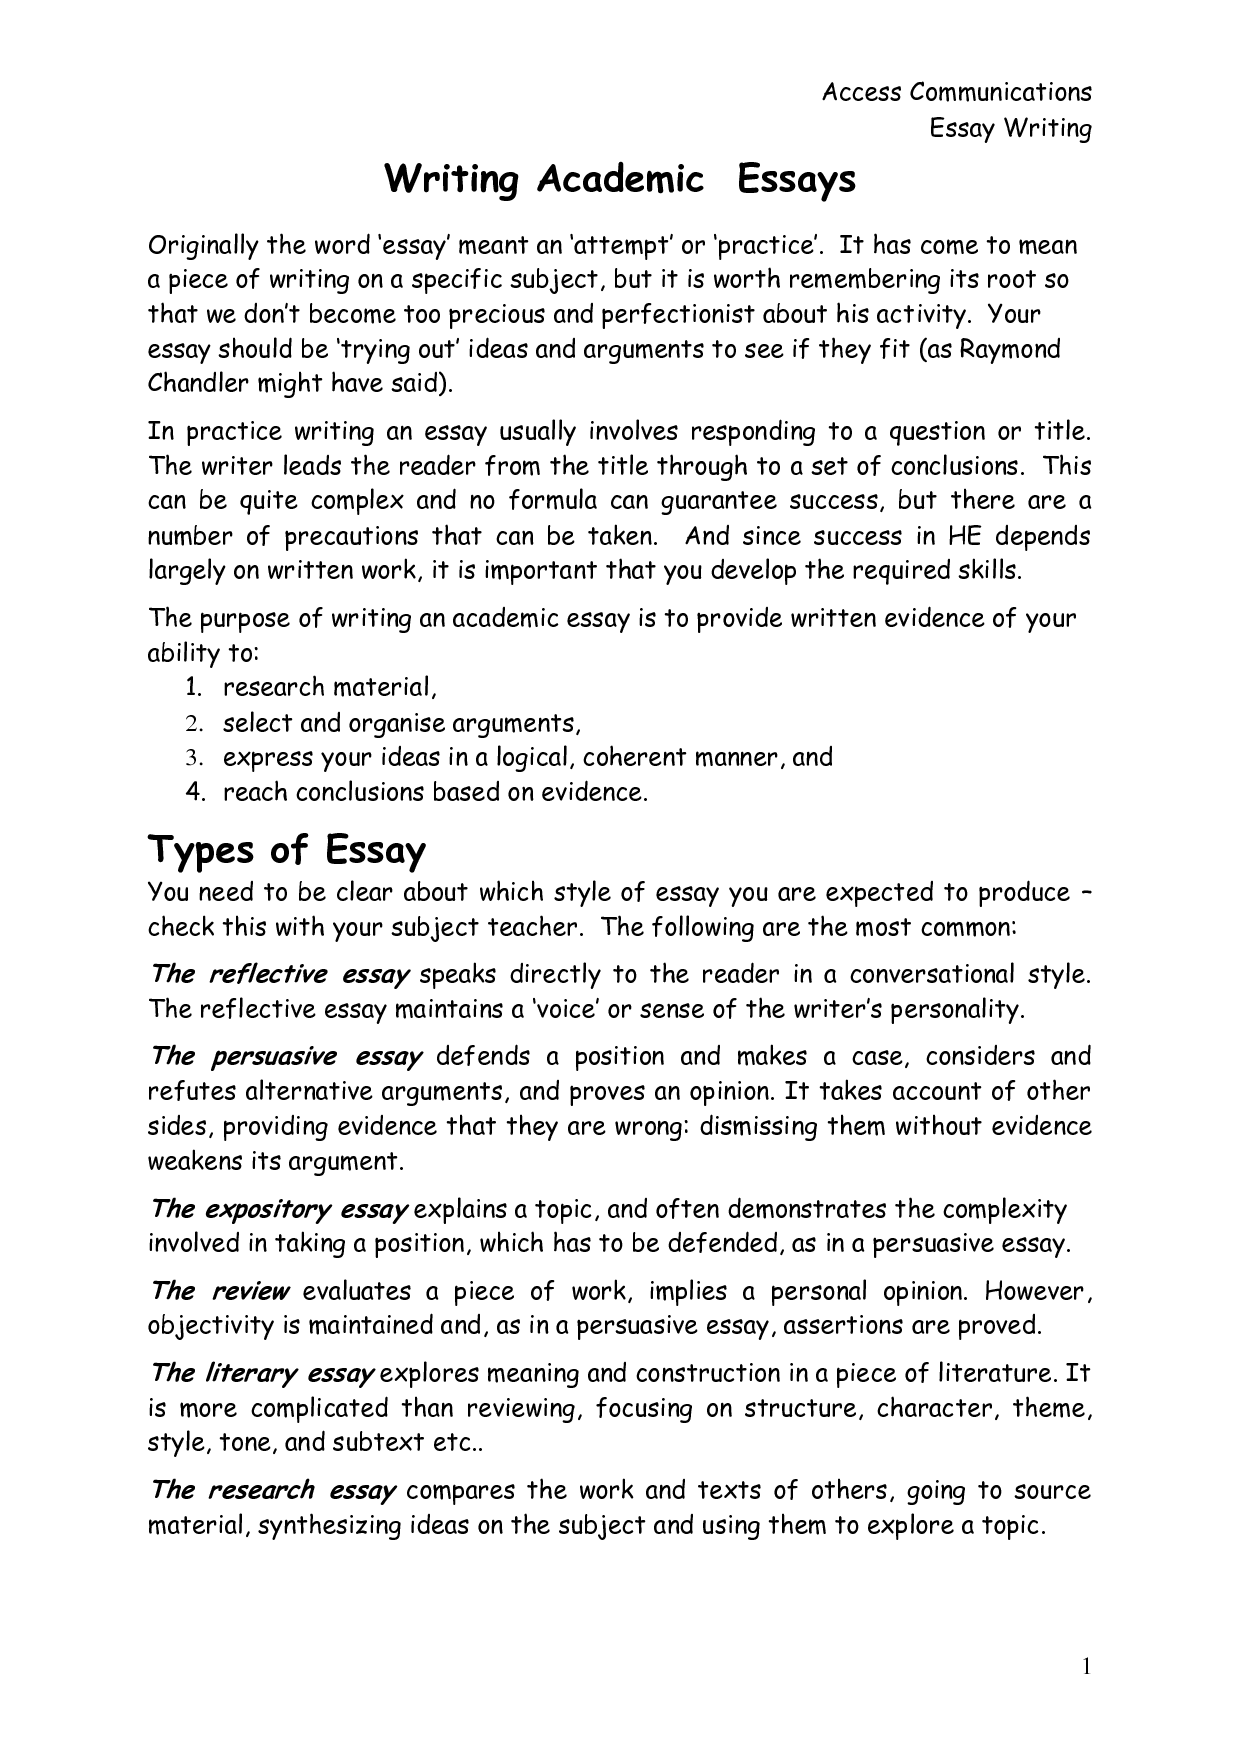 009 examples of self reflection essay essays introduction